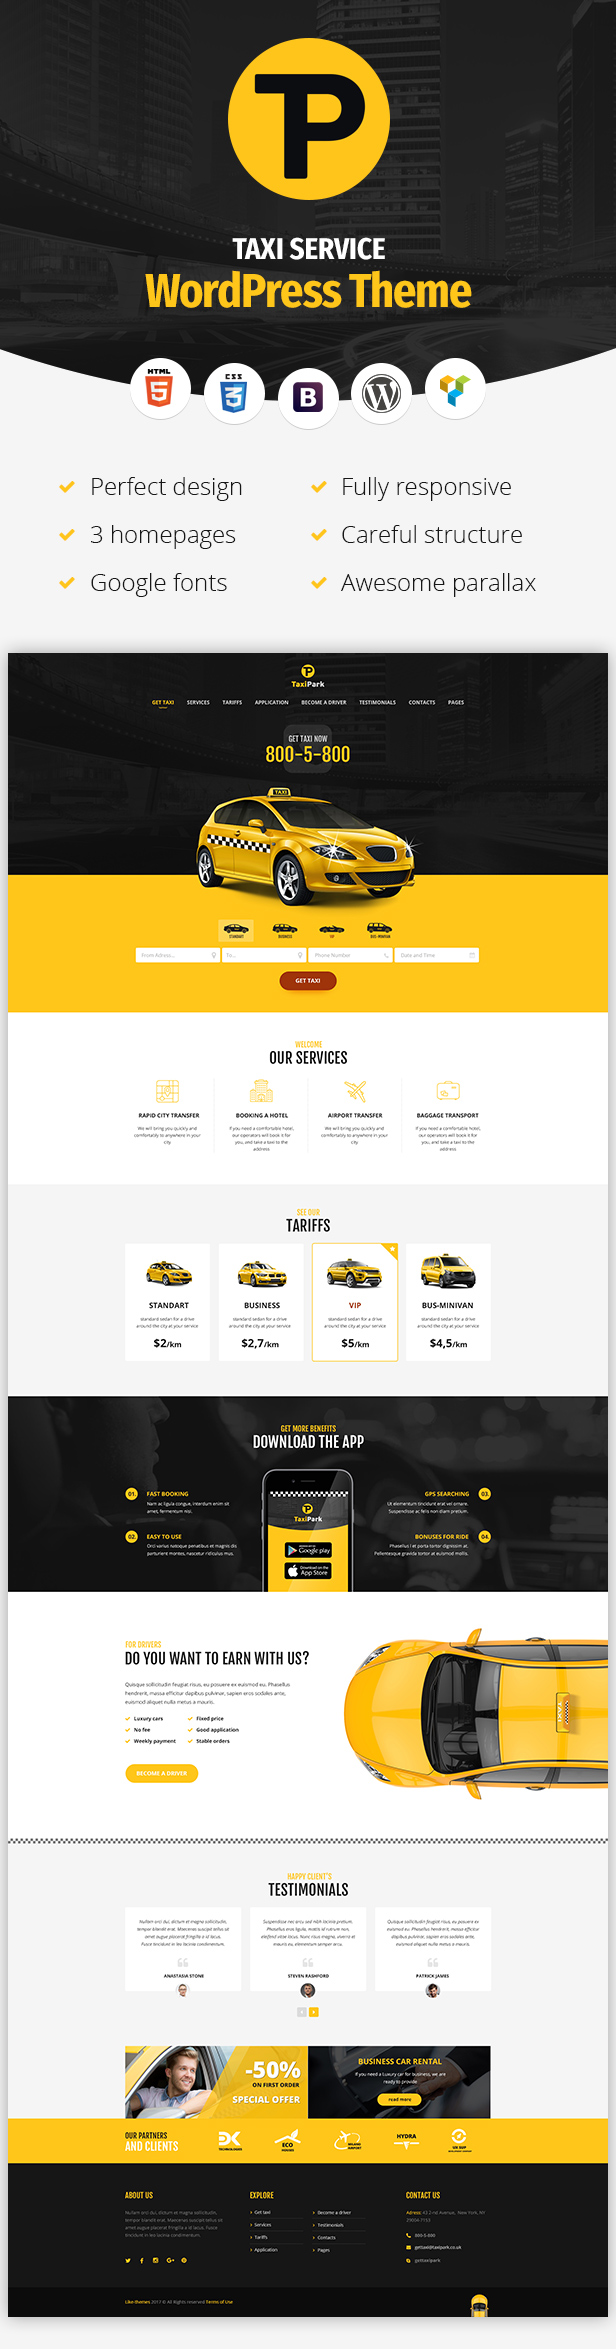 TaxiPark – Taxi Service Company WordPress Theme (Corporate)